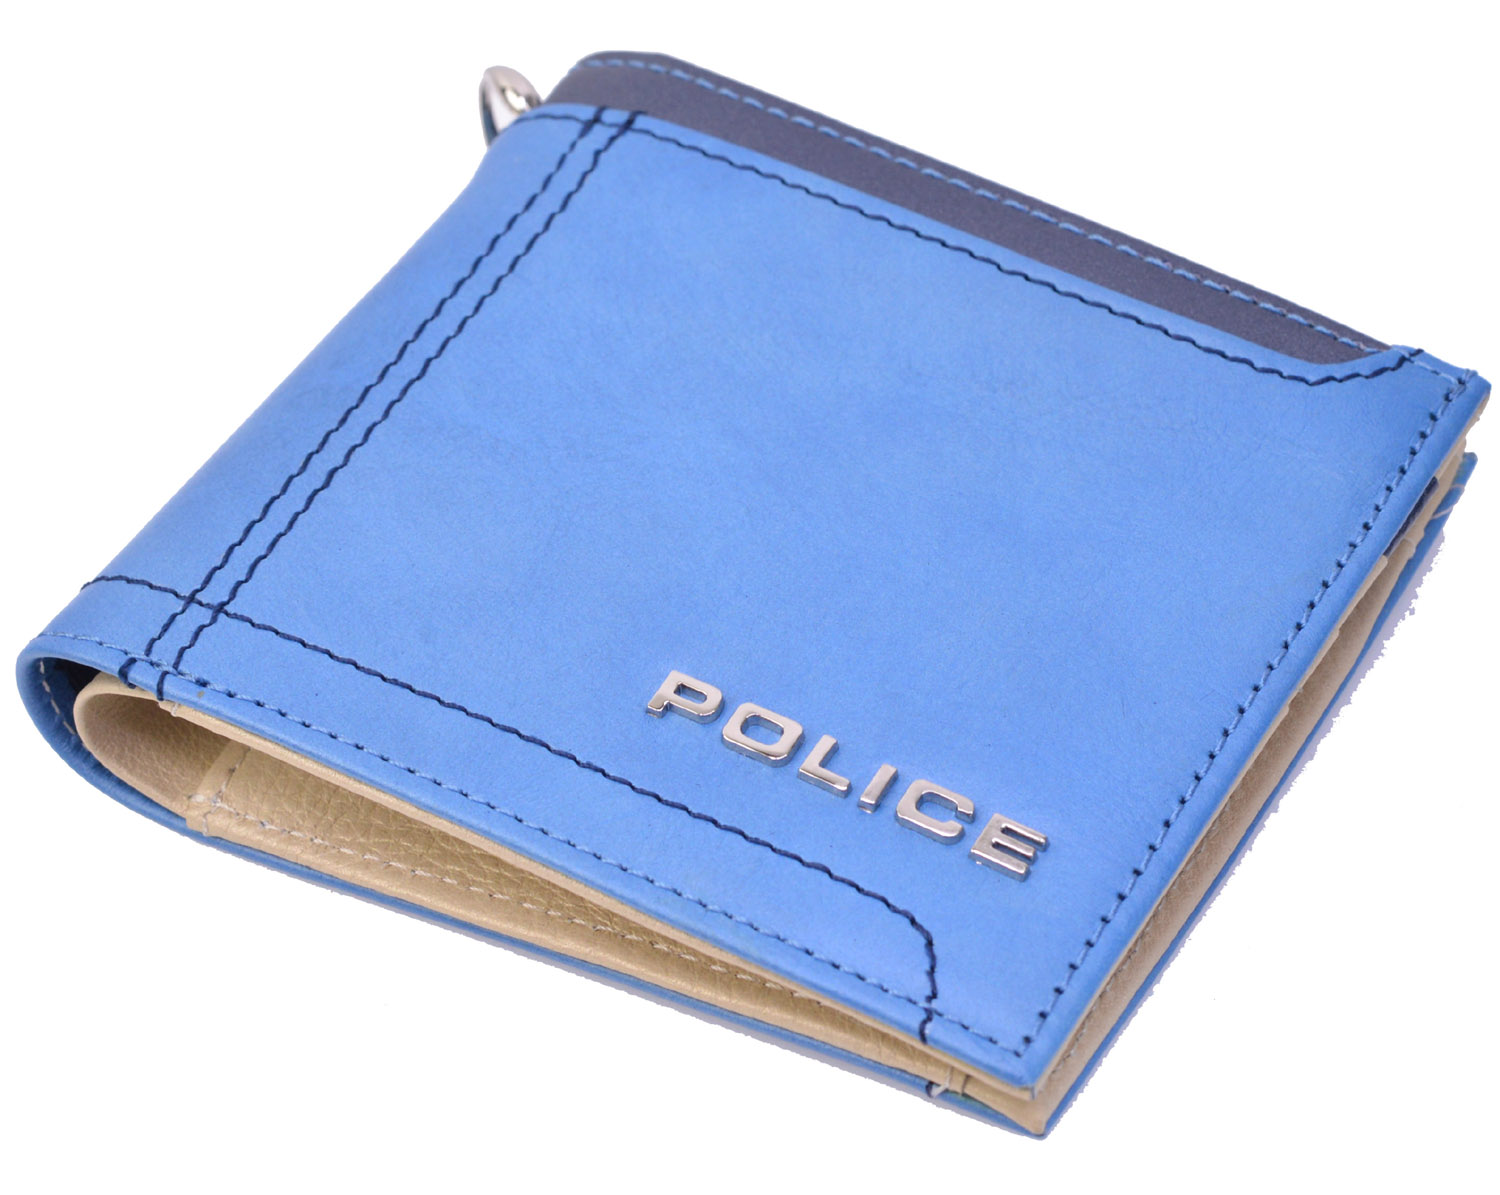 http://www.police.ne.jp/images/police-axis-wallet-2_blue_11.jpg